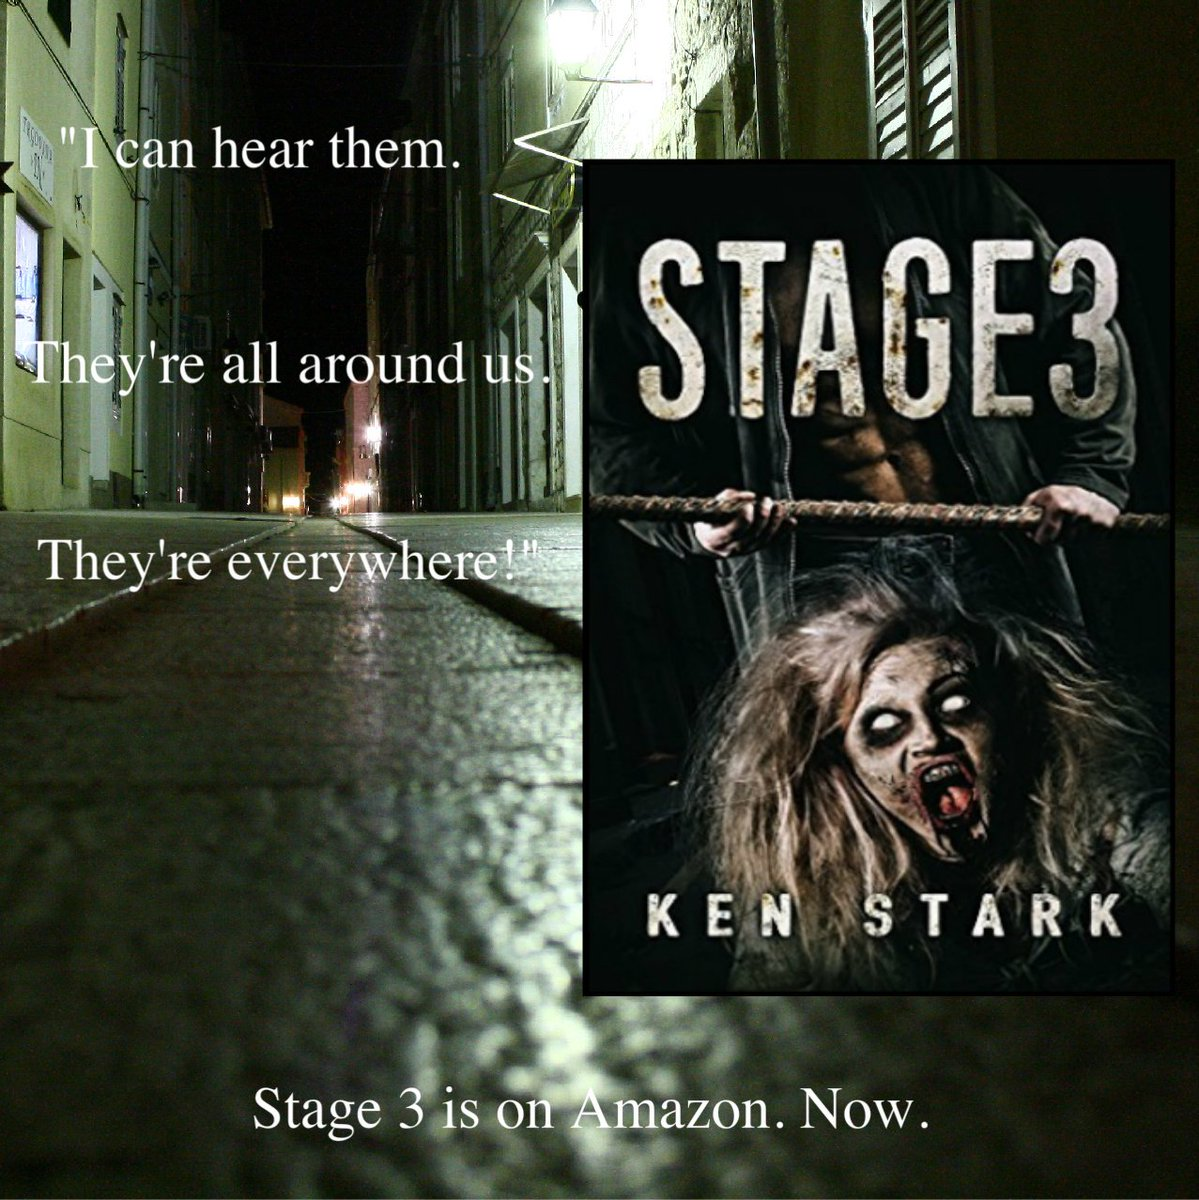 A flurry of shadows against the deeper blackness. They were there, and they were coming. #horror #zombie #thriller  https://www. amazon.com/Stage-Apocalyp tic-Thriller-Ken-Stark-ebook/dp/B01CYITYOS &nbsp; … <br>http://pic.twitter.com/05SBfINb5C